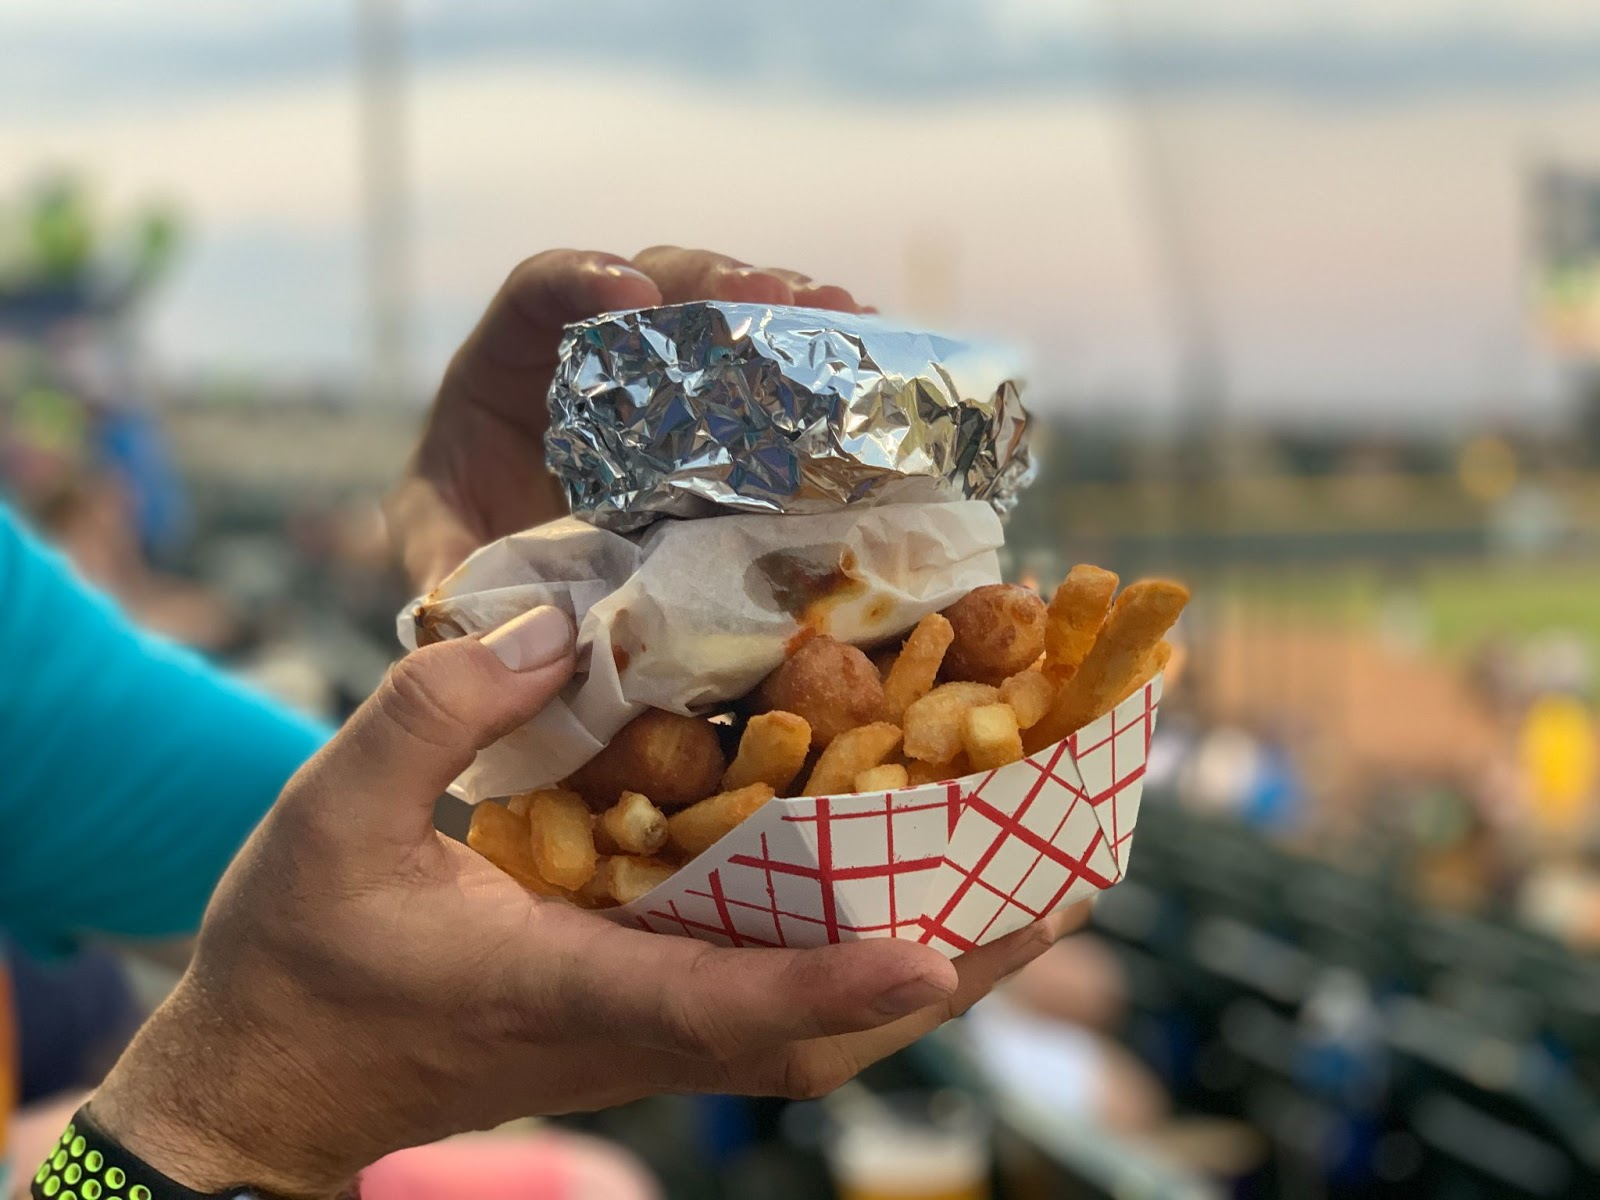 Hands holding french fries topped with more snacks